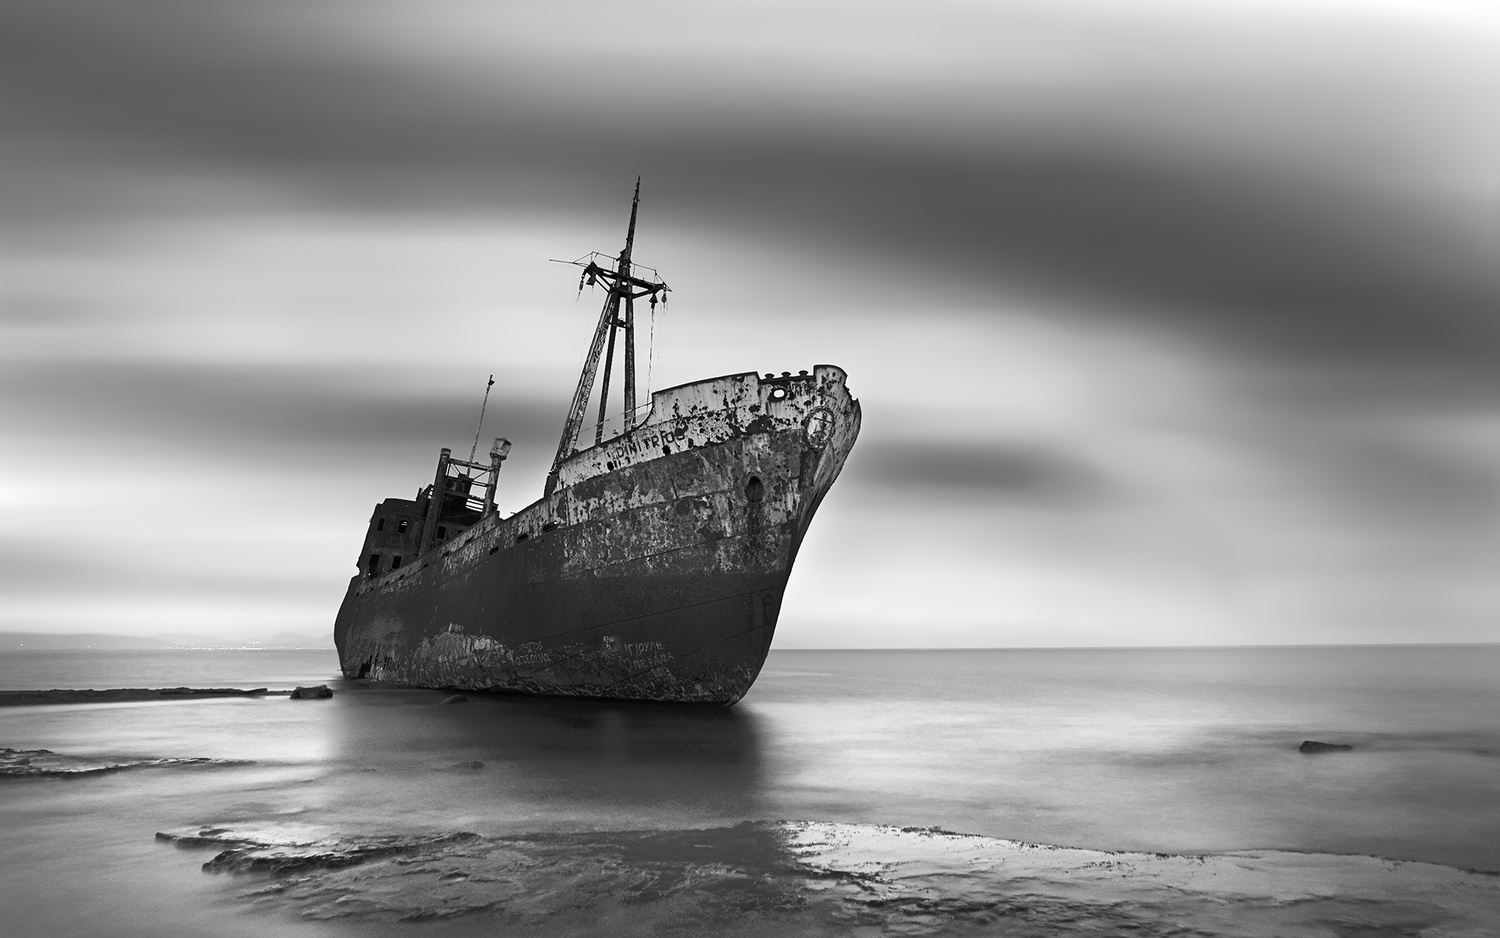 The Shipwreck III by Bill Peppas